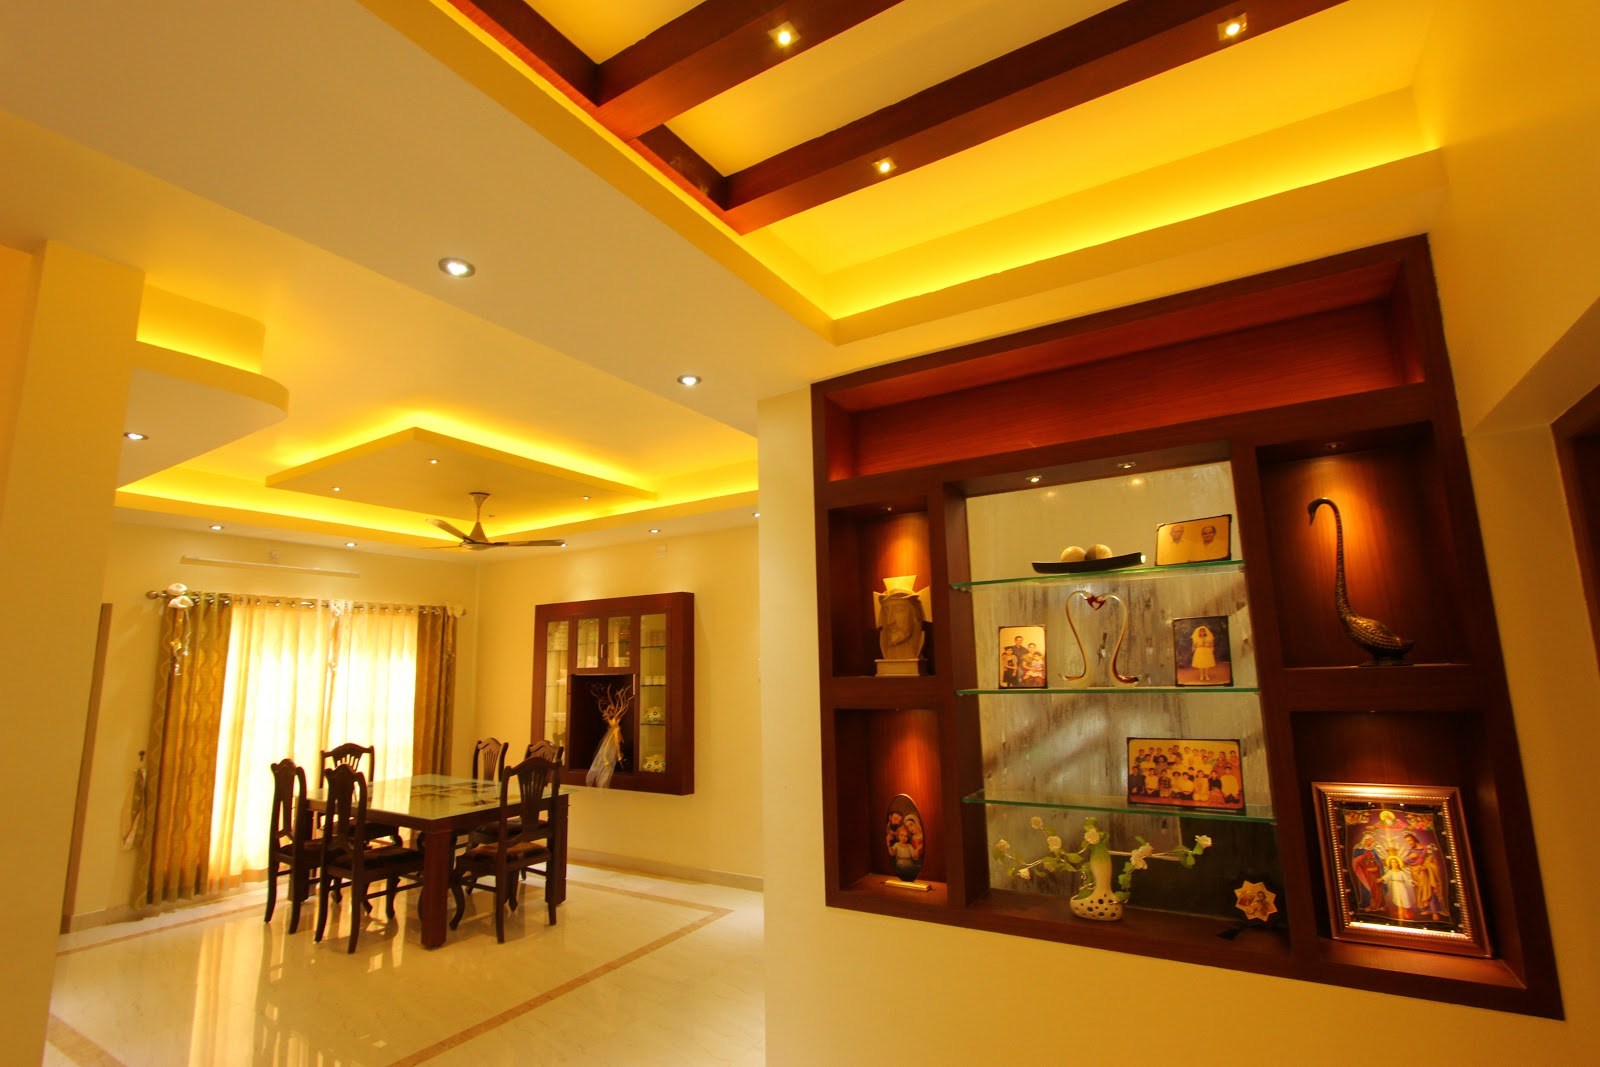 Shilpakala interiors award winning home interior design for Home interior design company